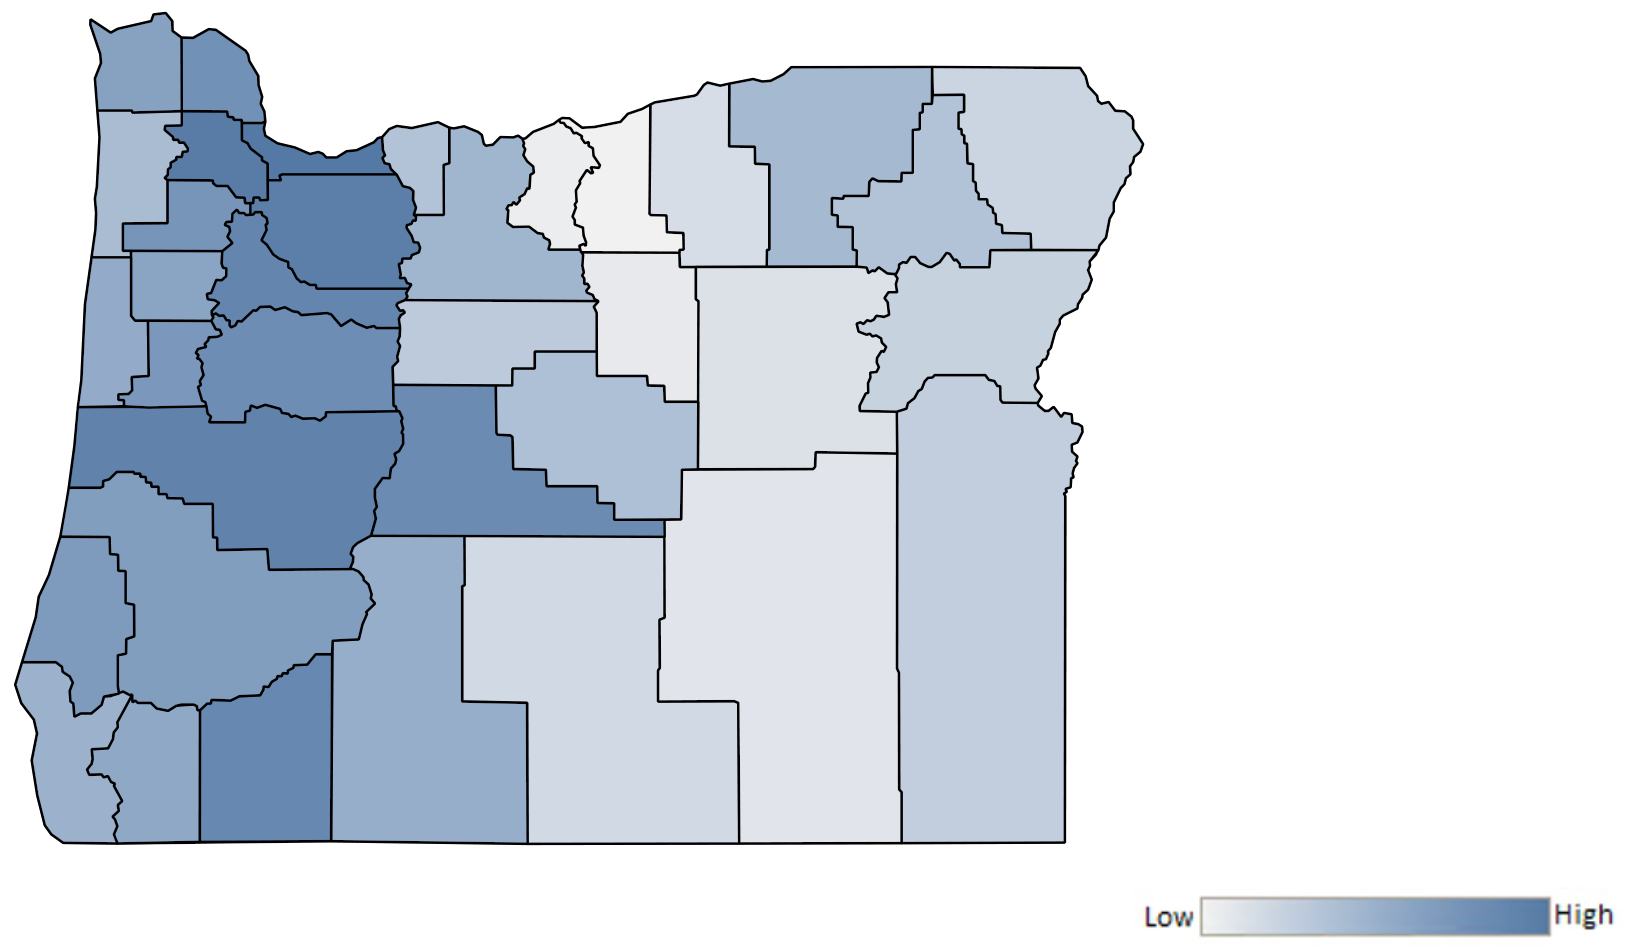 Map of Oregon counties indicating relative number of complaints from low to high. See attached CSV file for complaint data by jurisdiction.